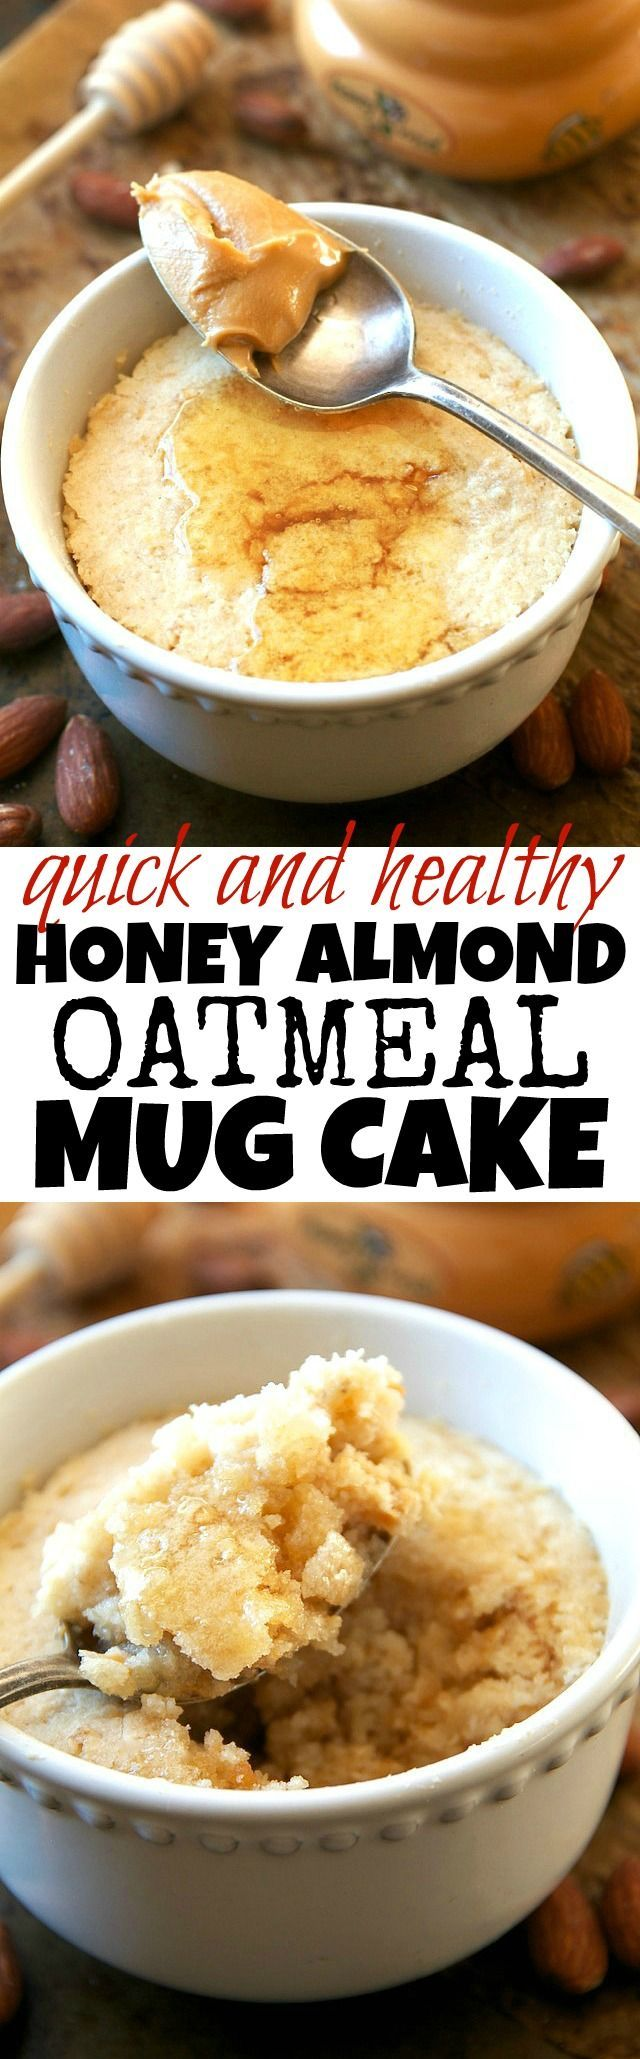 This healthy Honey Almond Oatmeal Mug Cake is made with NO flour, butter, or oil, but so soft and fluffy that you'd never be able to tell! | runningwithspoons... #recipe #glutenfree #dessert